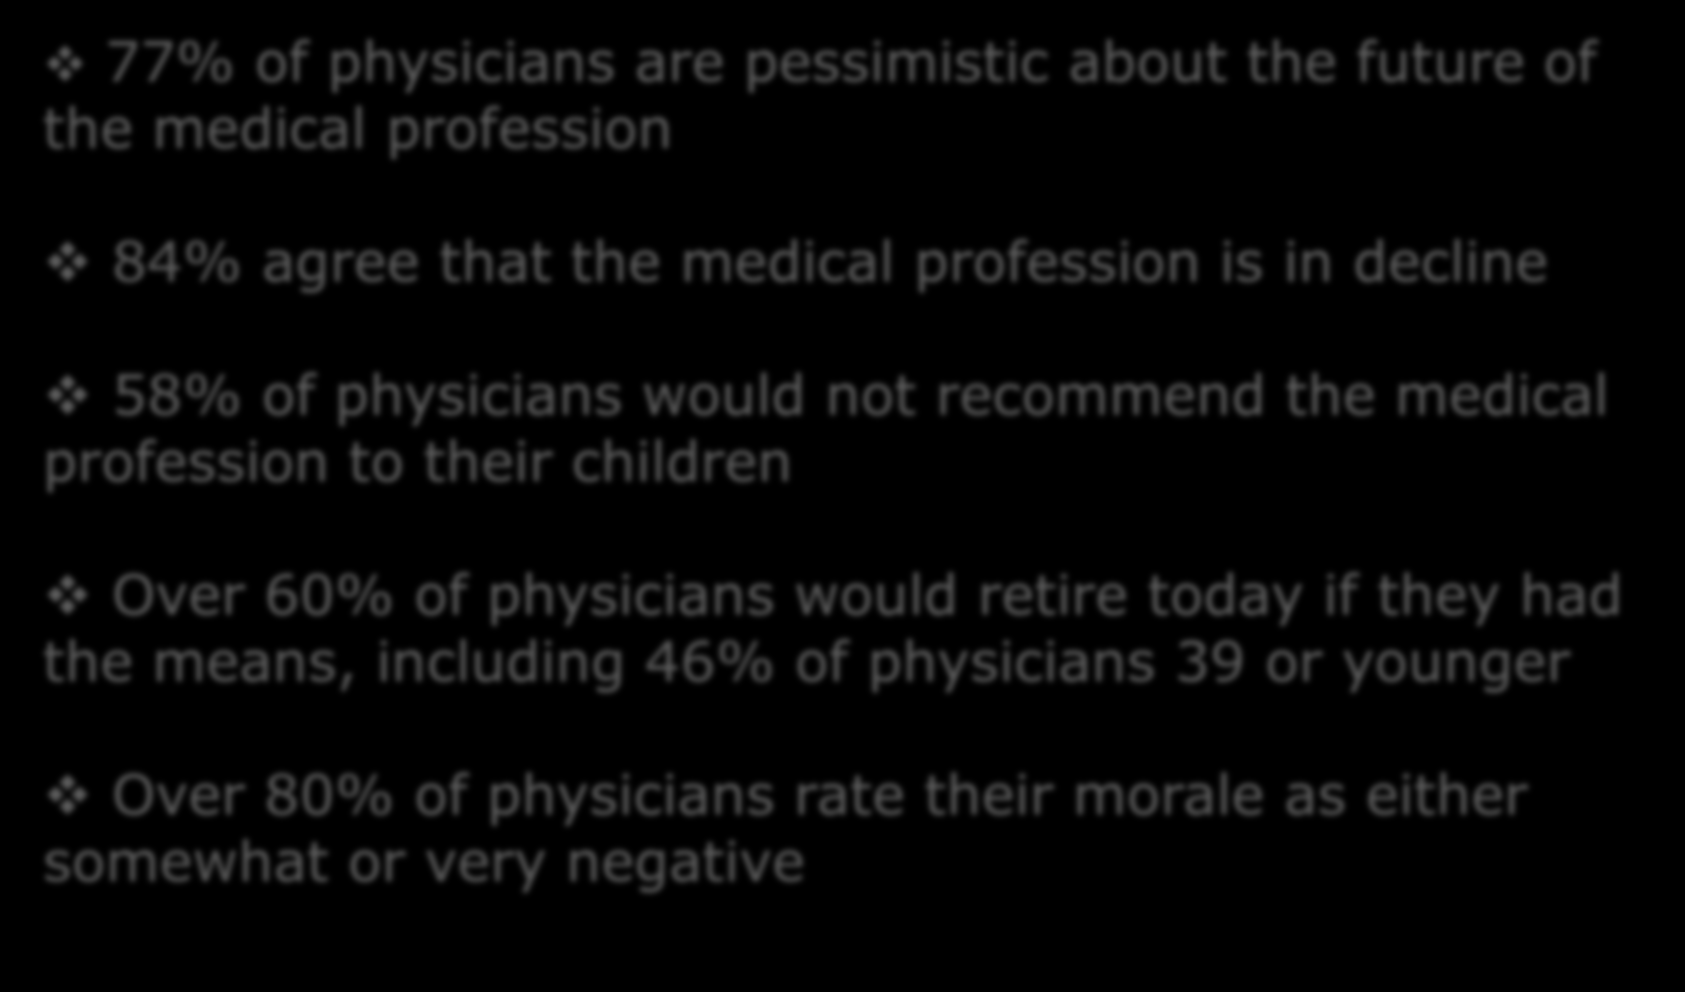 KEY FINDINGS 77% of physicians are pessimistic about the future of the medical profession 84% agree that the medical profession is in decline 58% of physicians would not recommend the medical